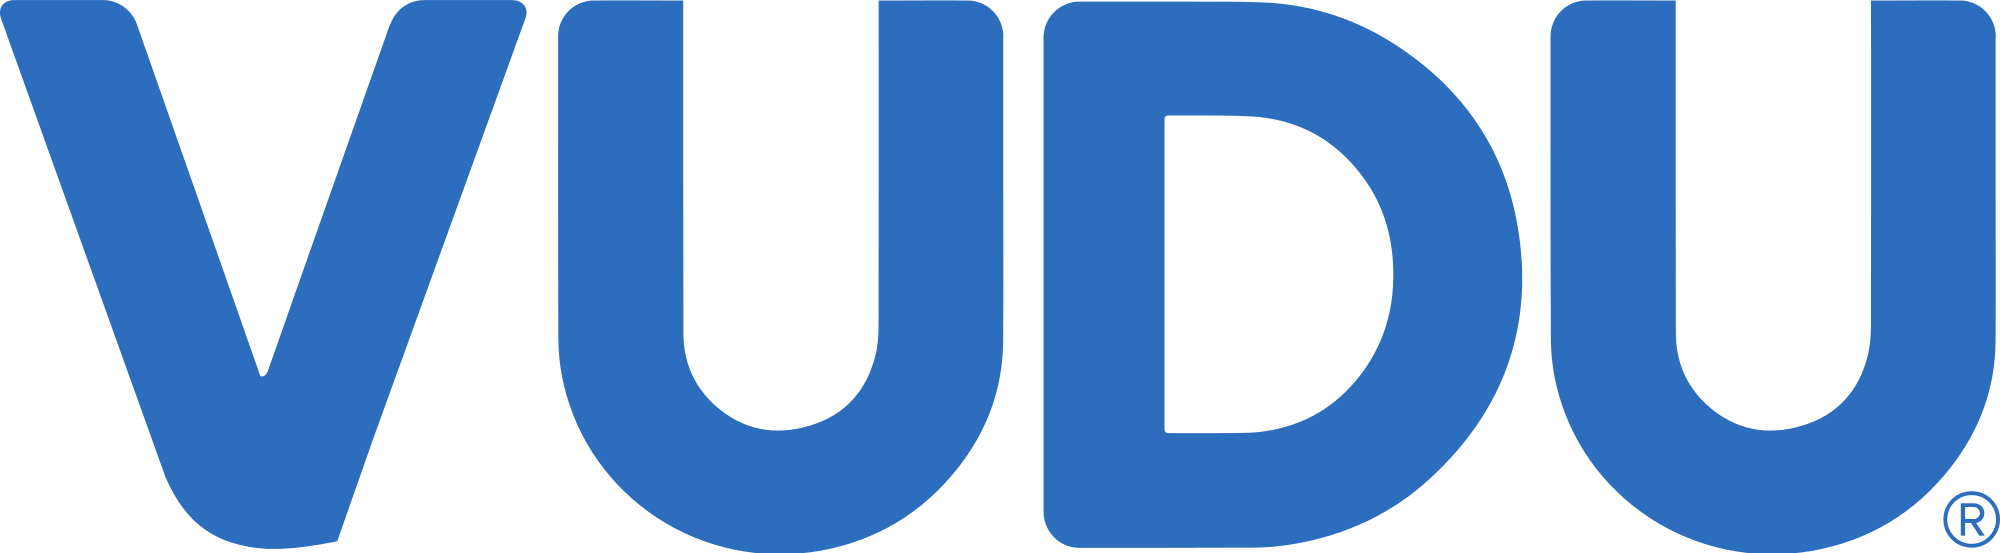 VUDU logo THE MILLENNIUM BUG